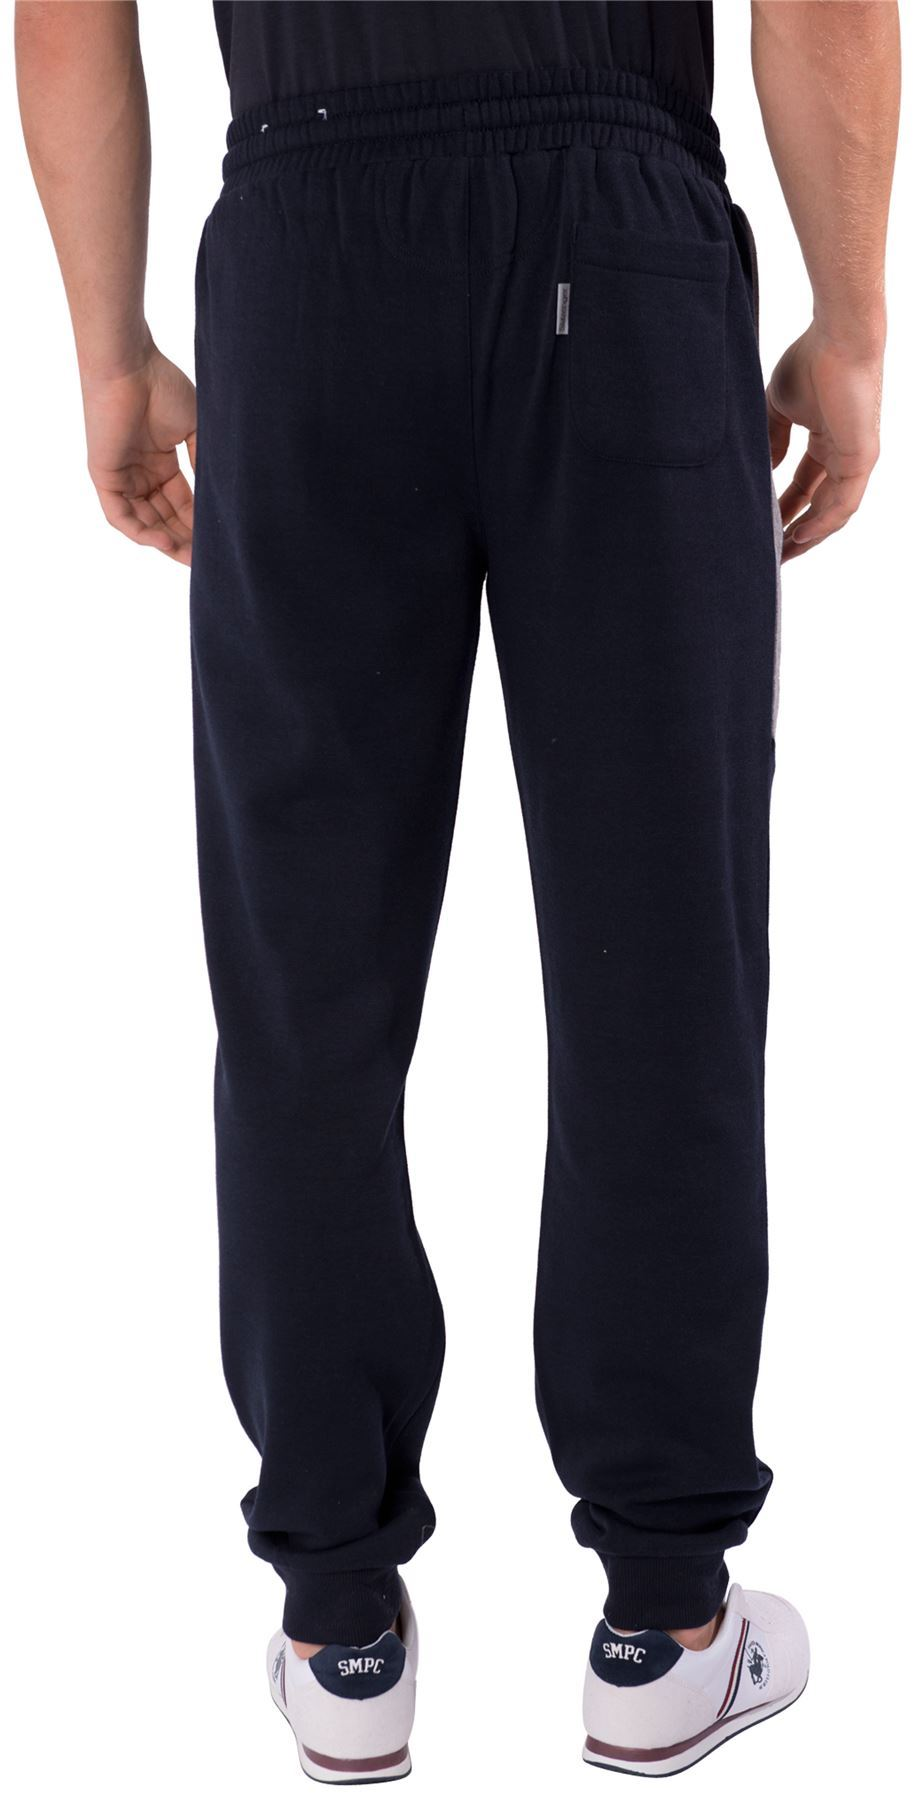 Find mens sweatpants with zipper pockets at ShopStyle. Shop the latest collection of mens sweatpants with zipper pockets from the most popular stores.